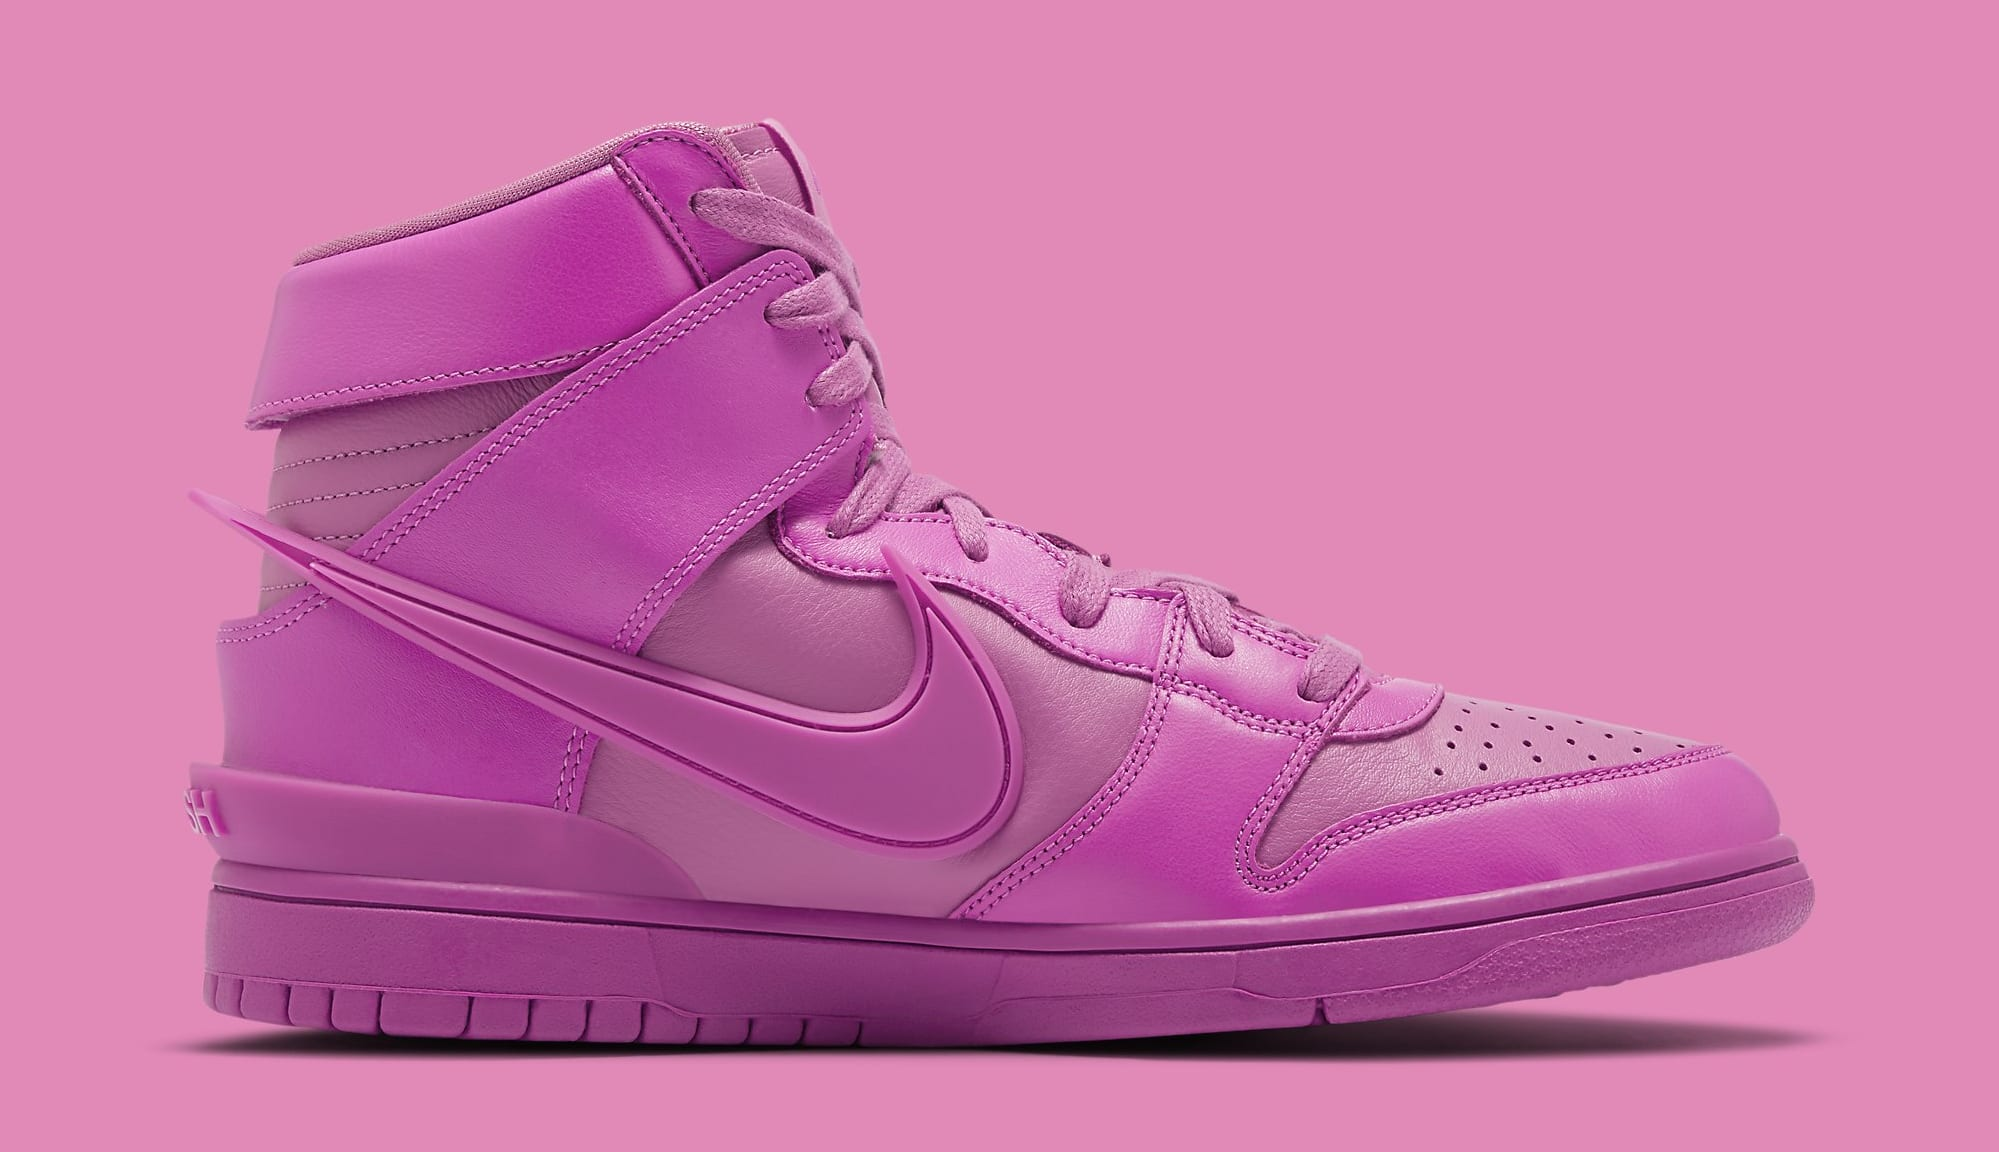 Ambush x Nike Dunk High 'Cosmic Fuchsia' CU7544-600 Medial